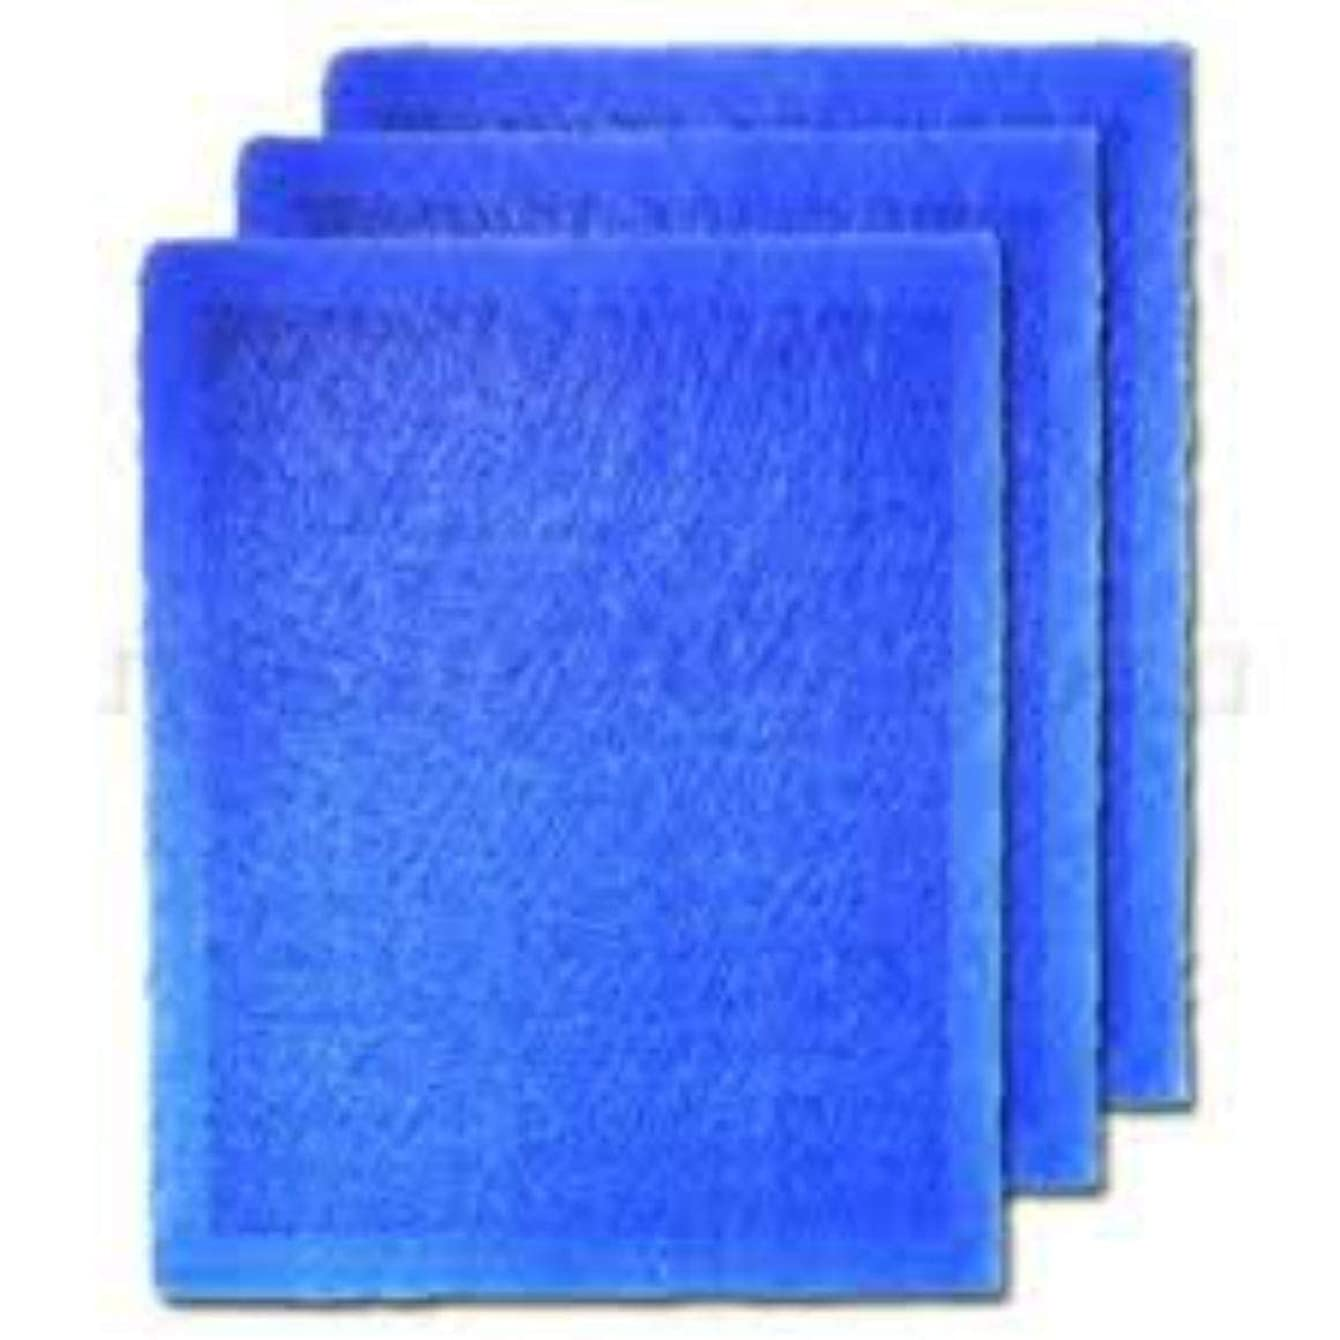 Dynamic Air Cleaner Replacement Filter 20x25 (3 Pack)